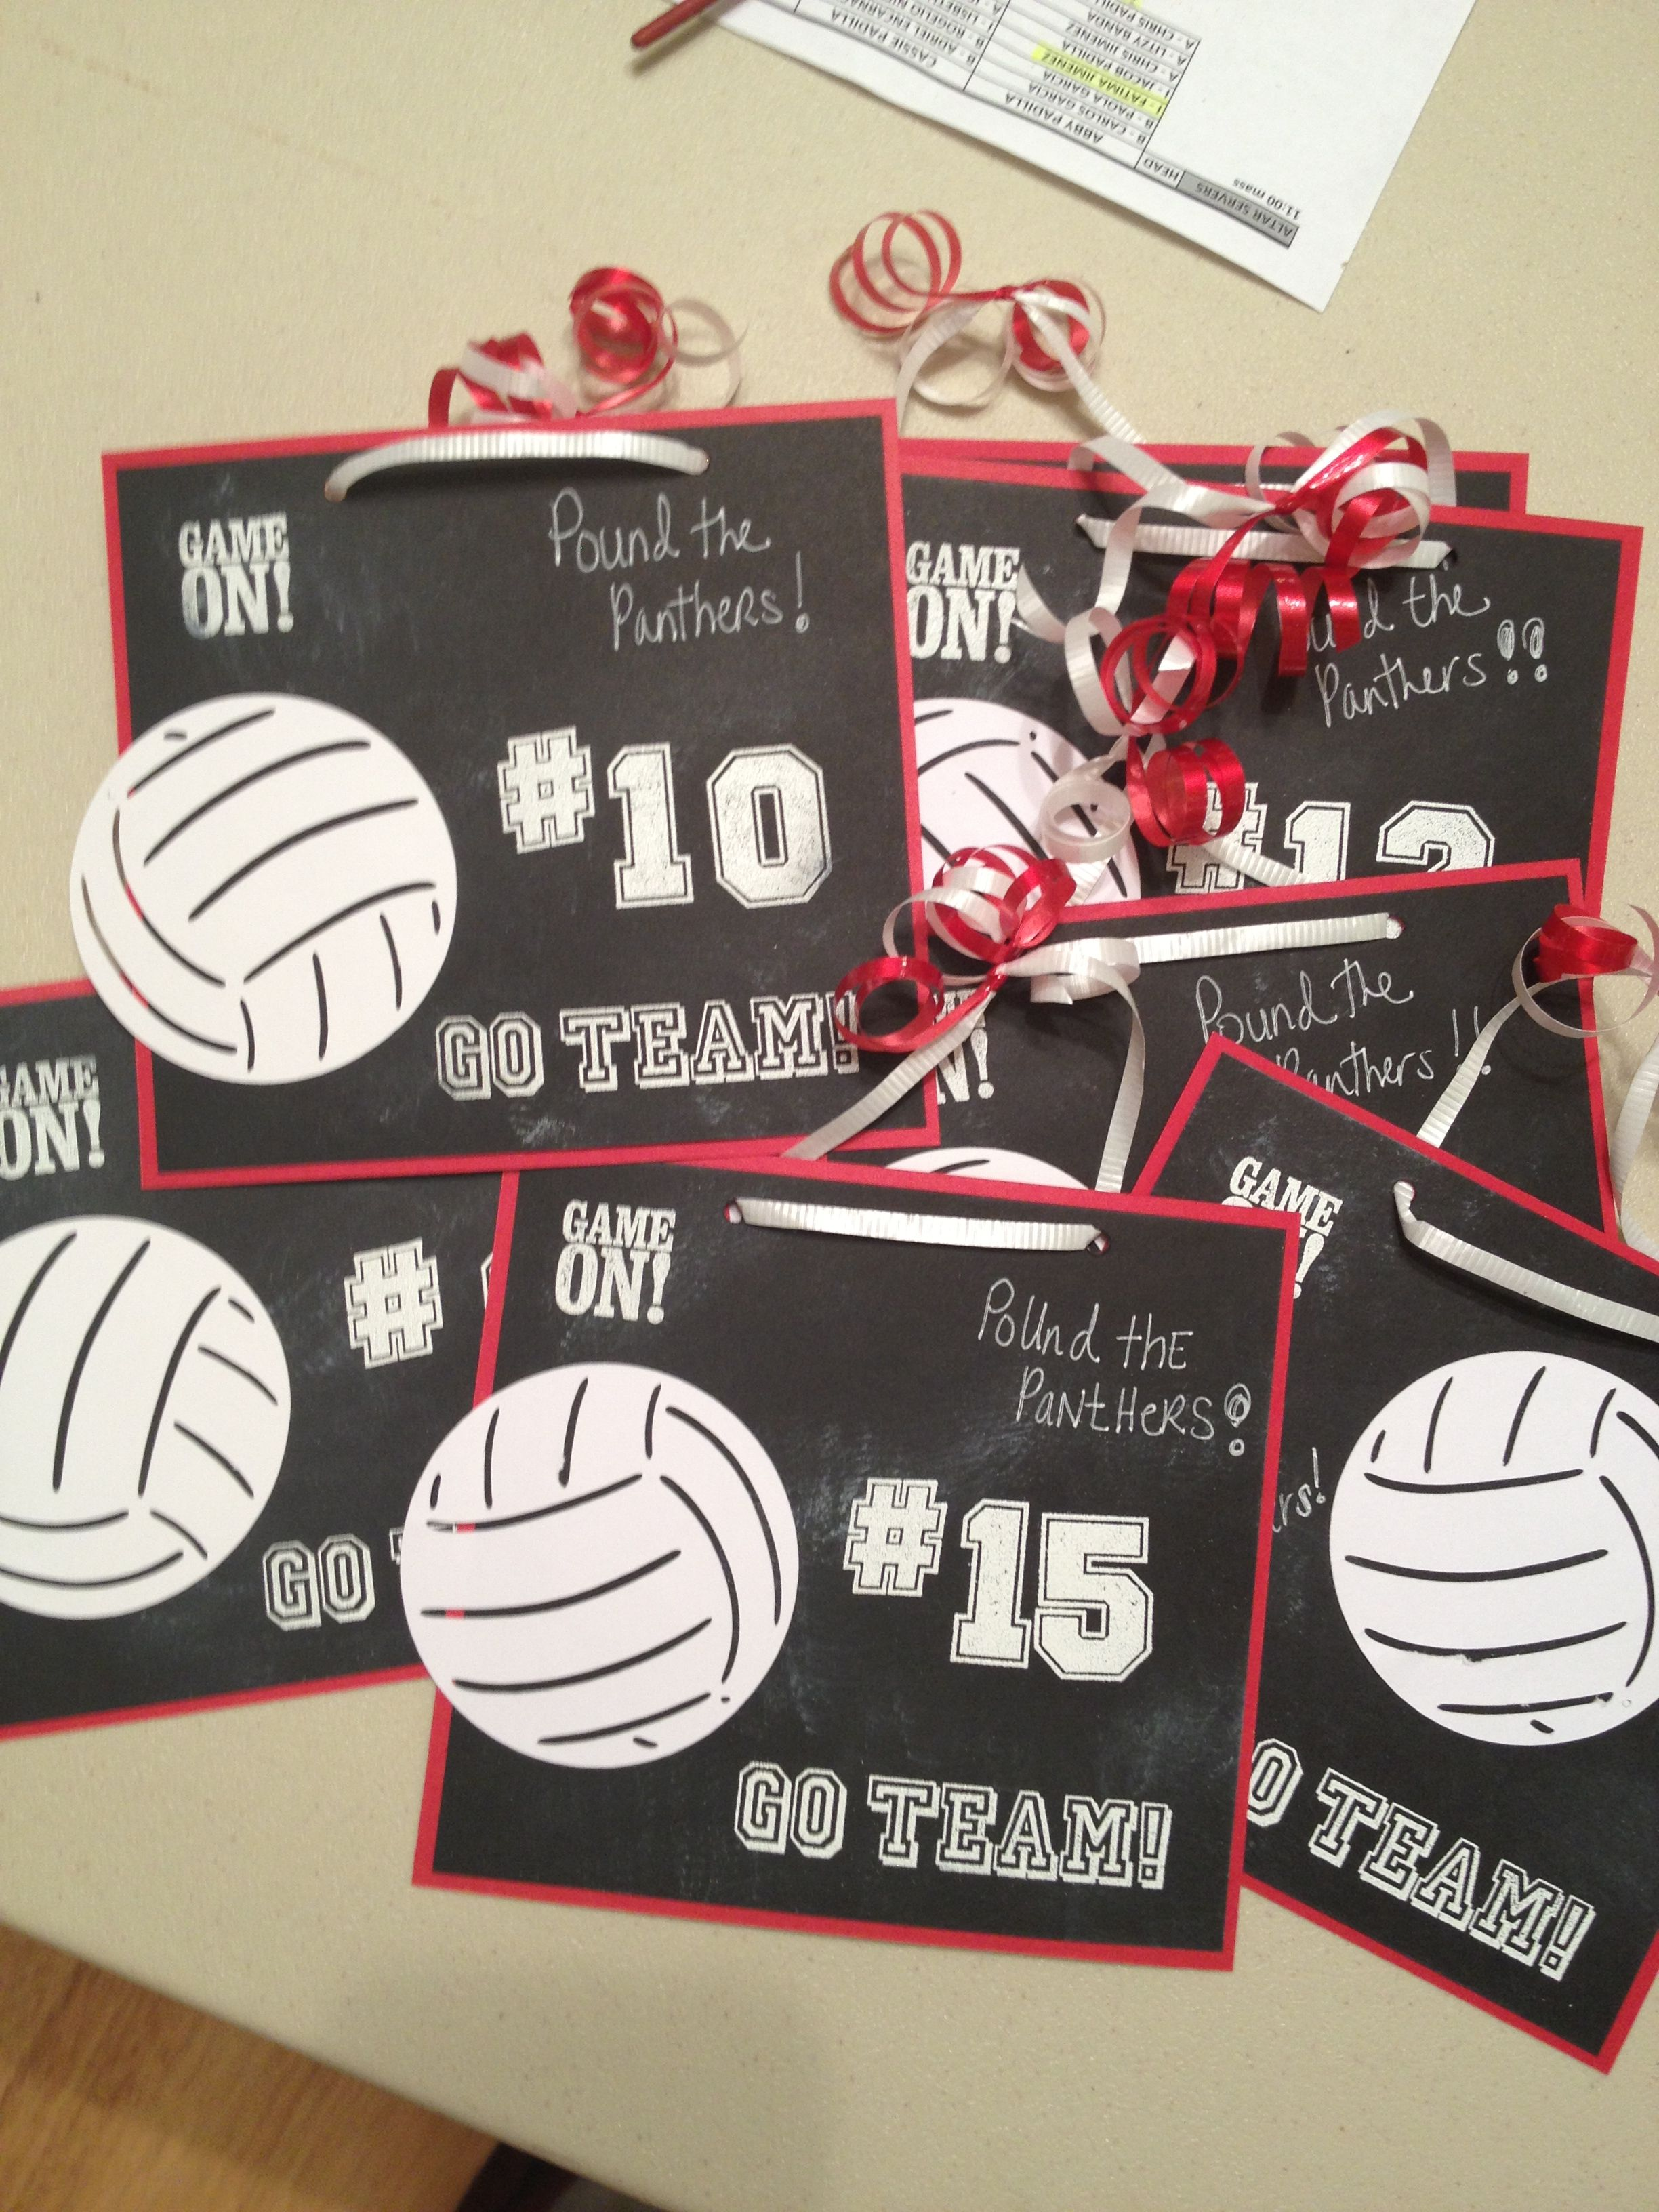 Chalkboard Volleyball Locker Decorations I Made These For My Daughter S Jv Volleyball Team So Cute Fun Volleyball Locker Volleyball Locker Decorations Volleyball Crafts